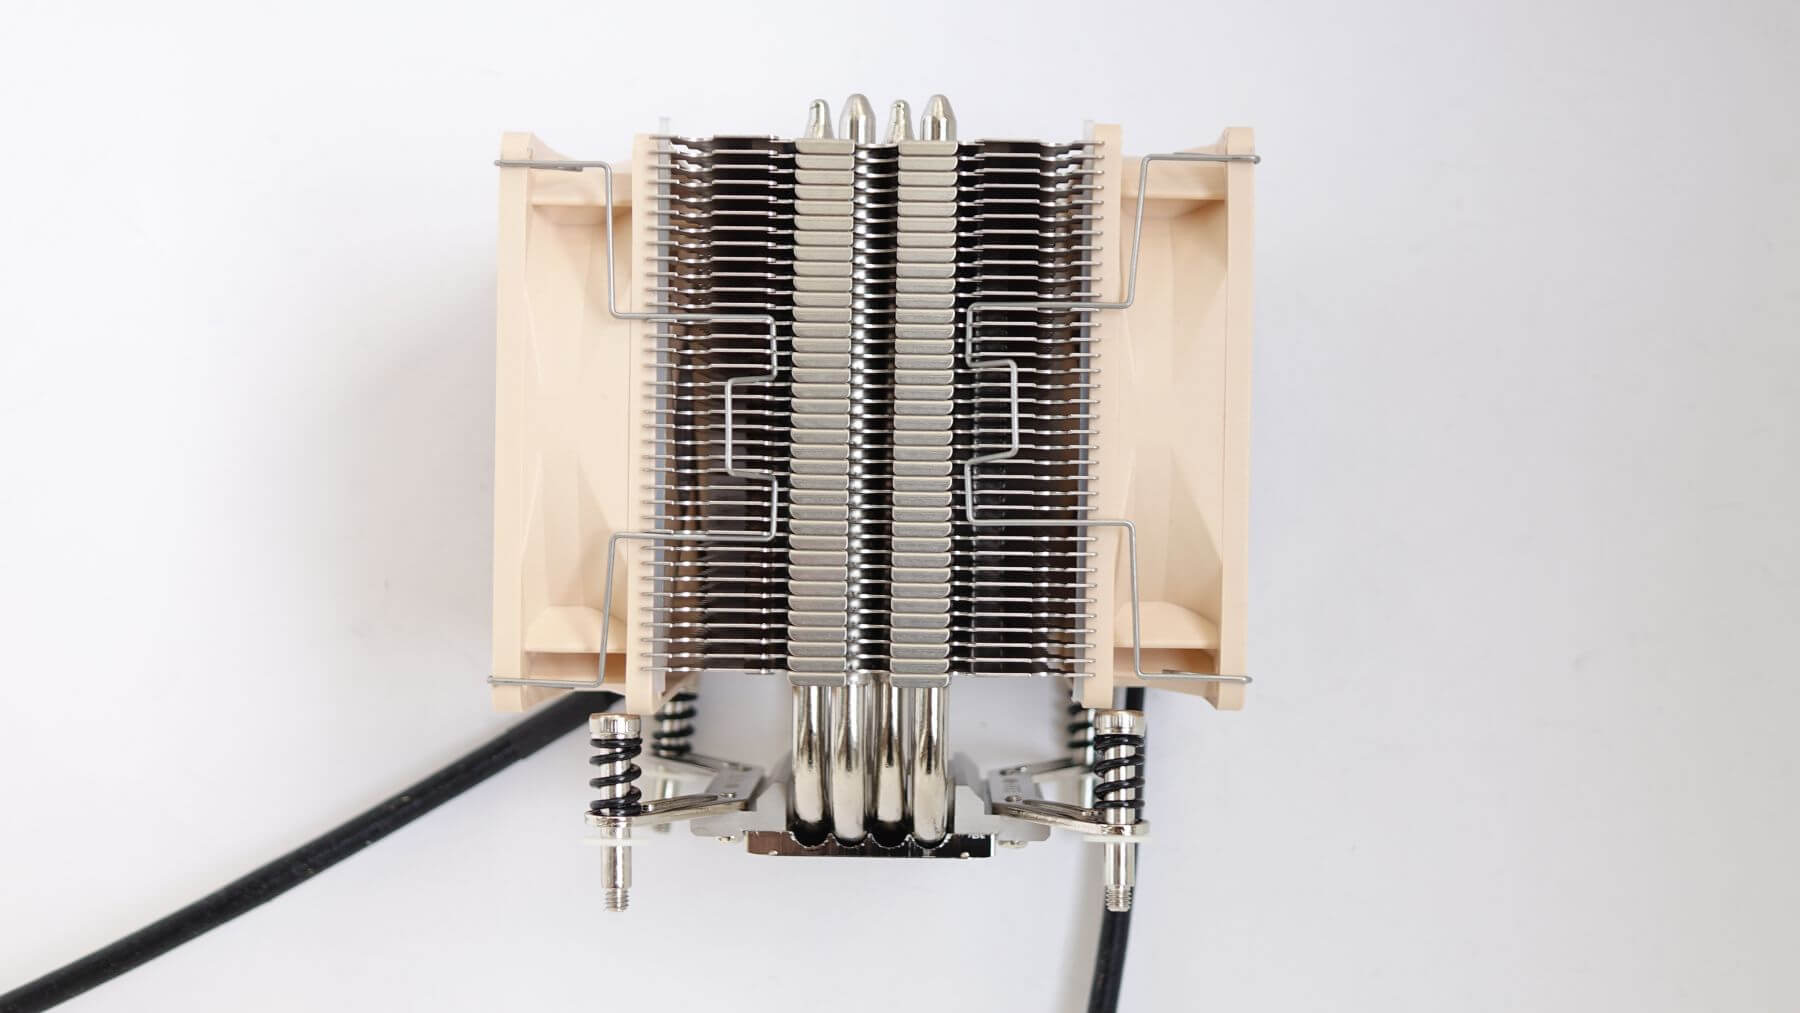 Noctua NH-U9DX i4 сбоку пара